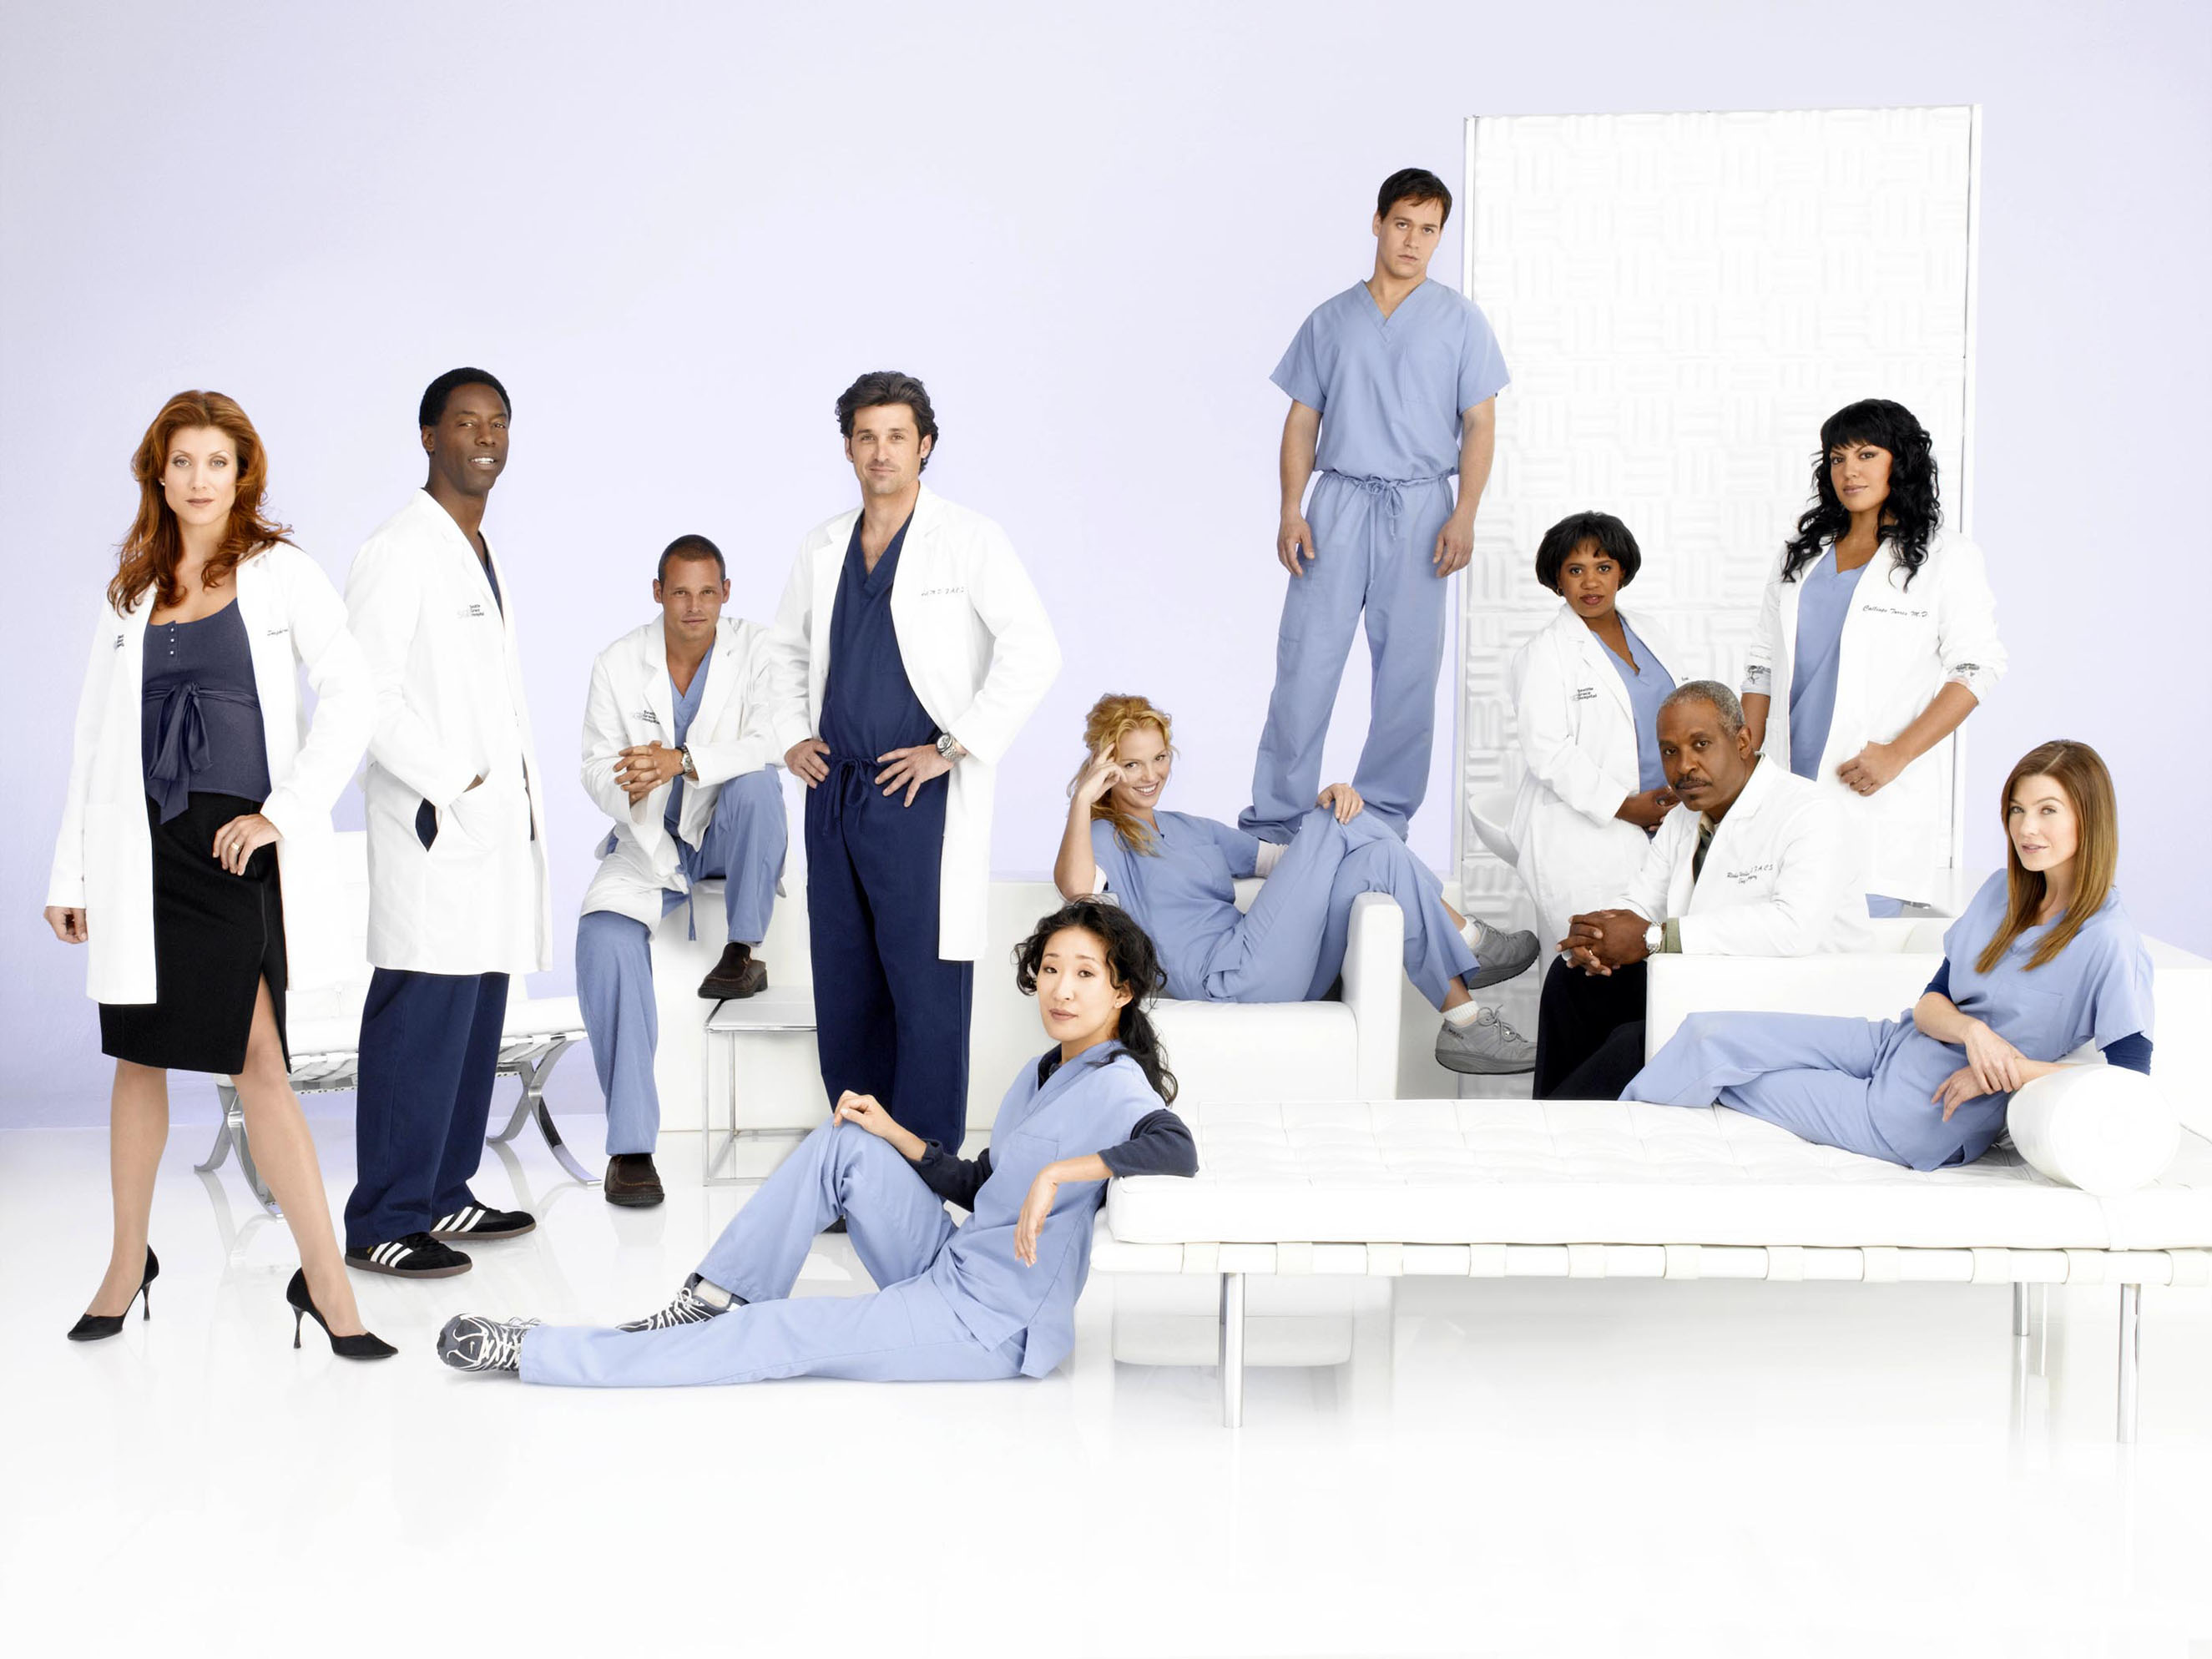 GREY'S ANATOMY [US 2005 - ]  [L-R] Kate Walsh as Addison Shepherd, Isaiah Washington as Preston Burke, Justin Chambers as Ale